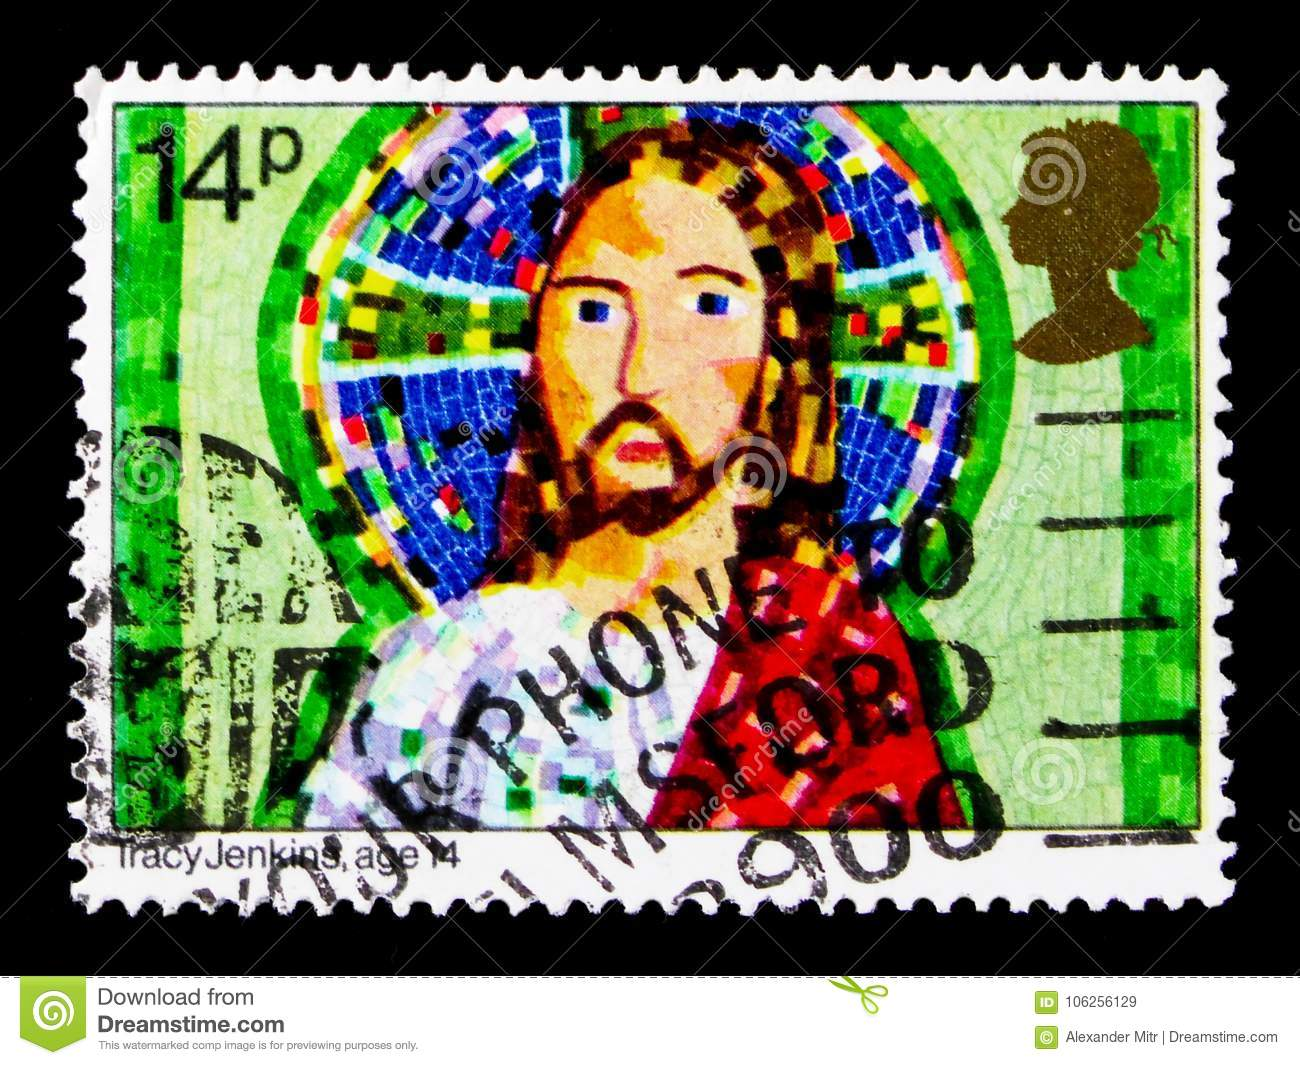 Jesus Christ, by Tracy Jenkins, age 14, Christmas 1981 - Children`s Pictures serie, circa 1981